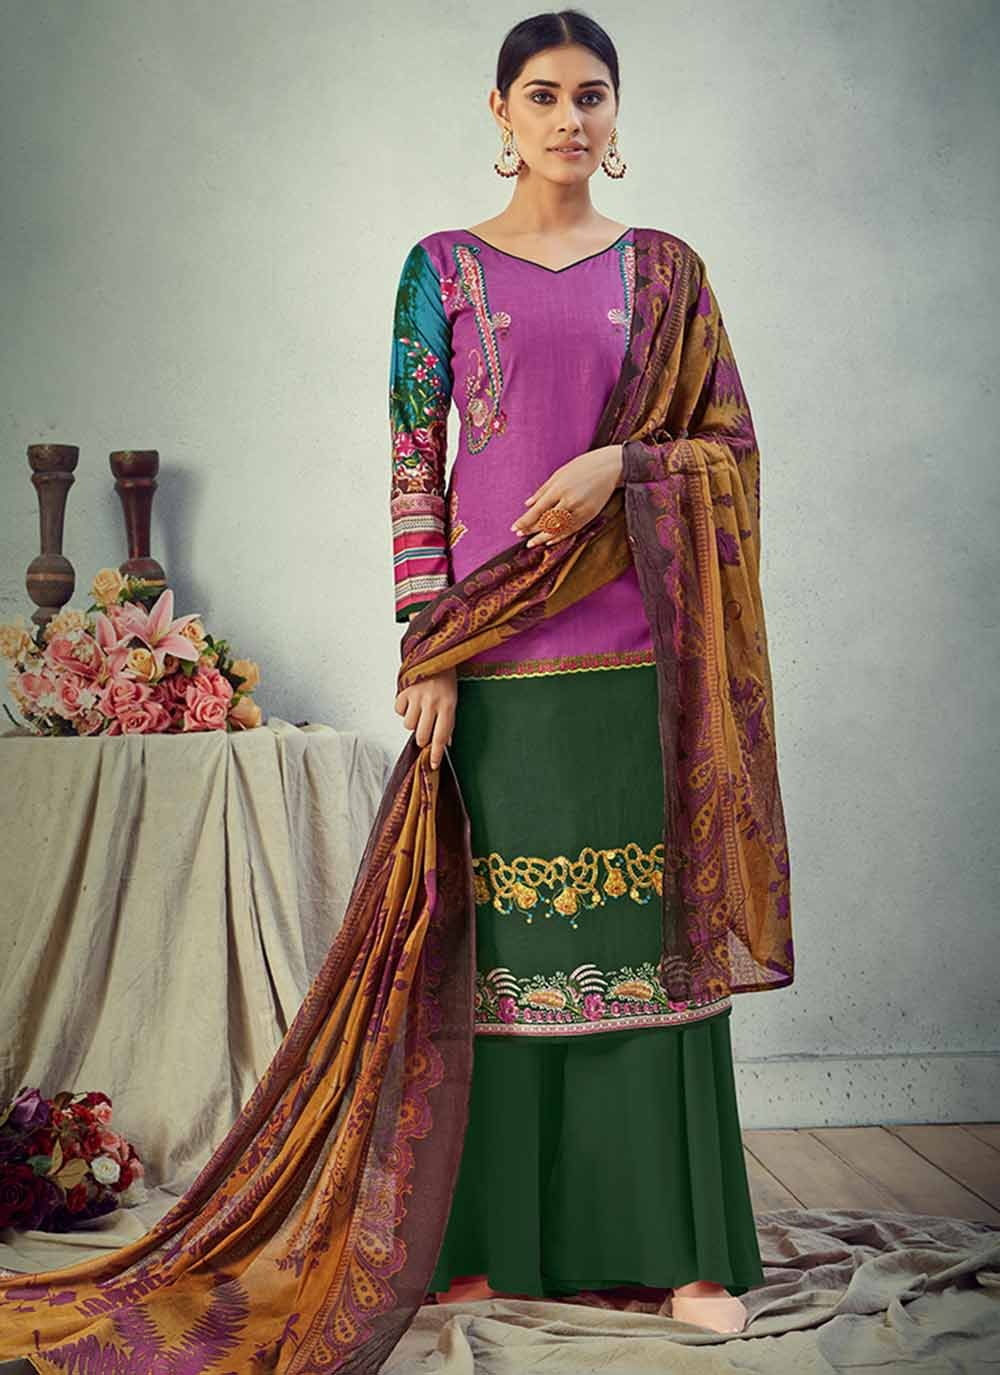 Green and Purple Digital Print Cotton Salwar Kameez